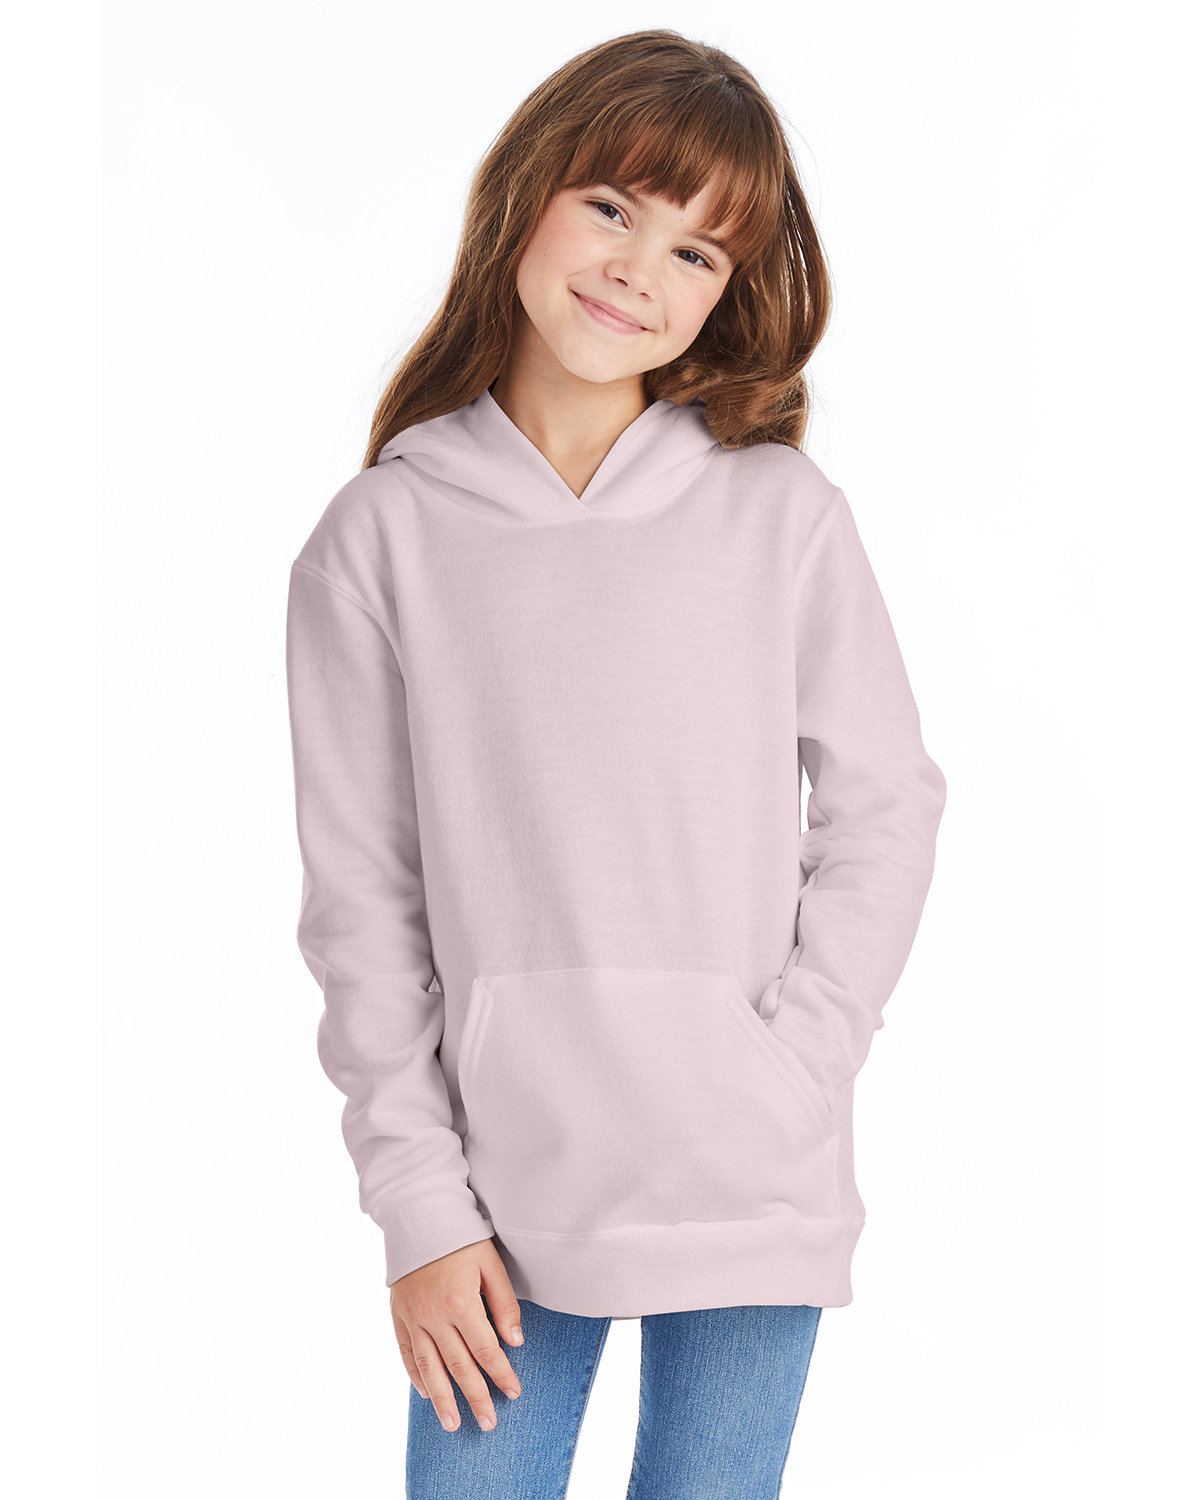 Hanes Youth EcoSmart® 50/50 Pullover Hooded Sweatshirt PALE PINK